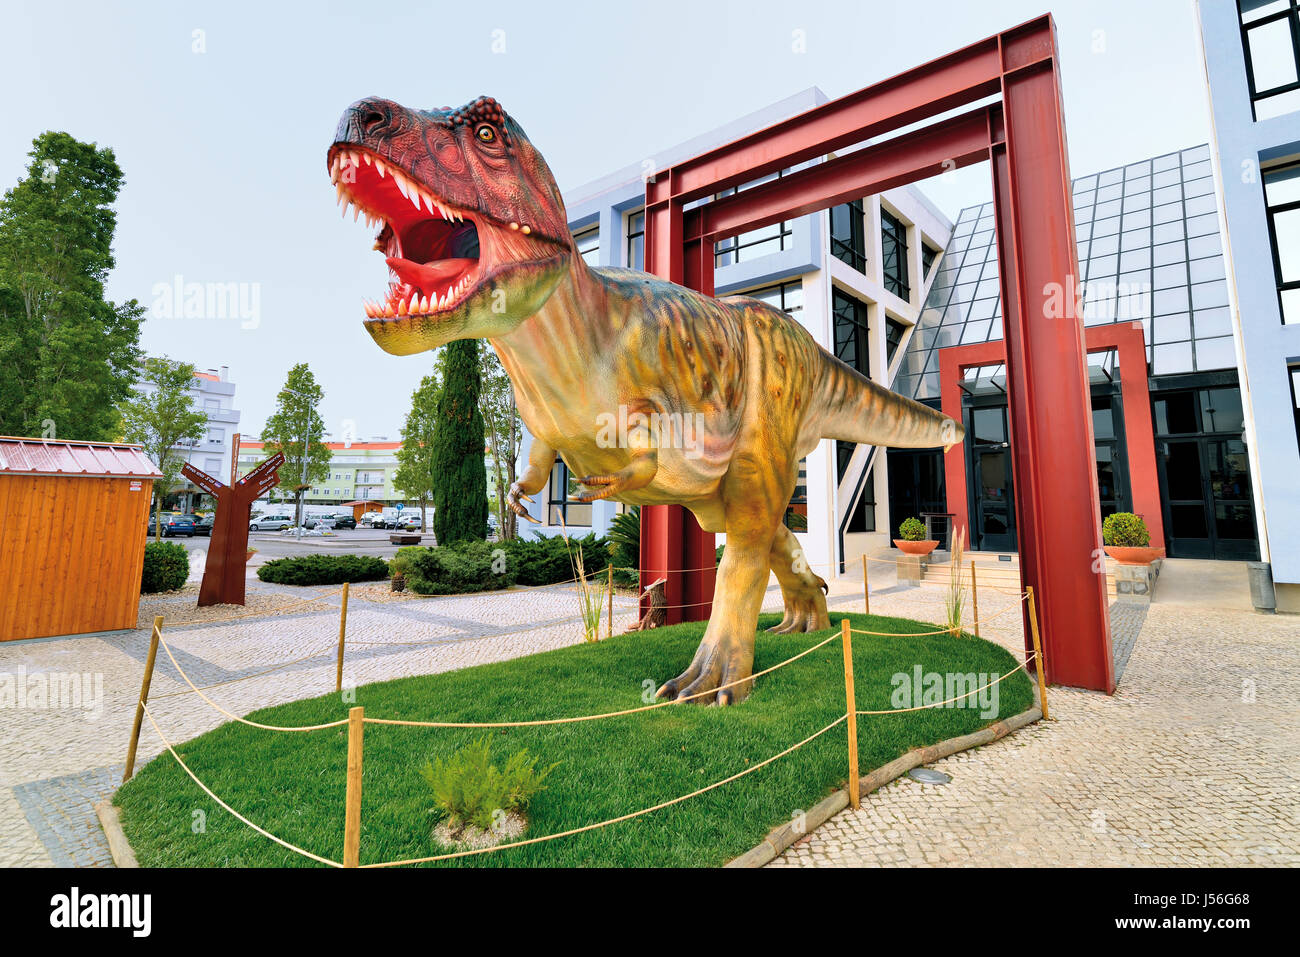 Model of a Tyrannosaurus Rex in front of the town hall of portuguese Dinosaurs capital Lourinhã - Stock Image